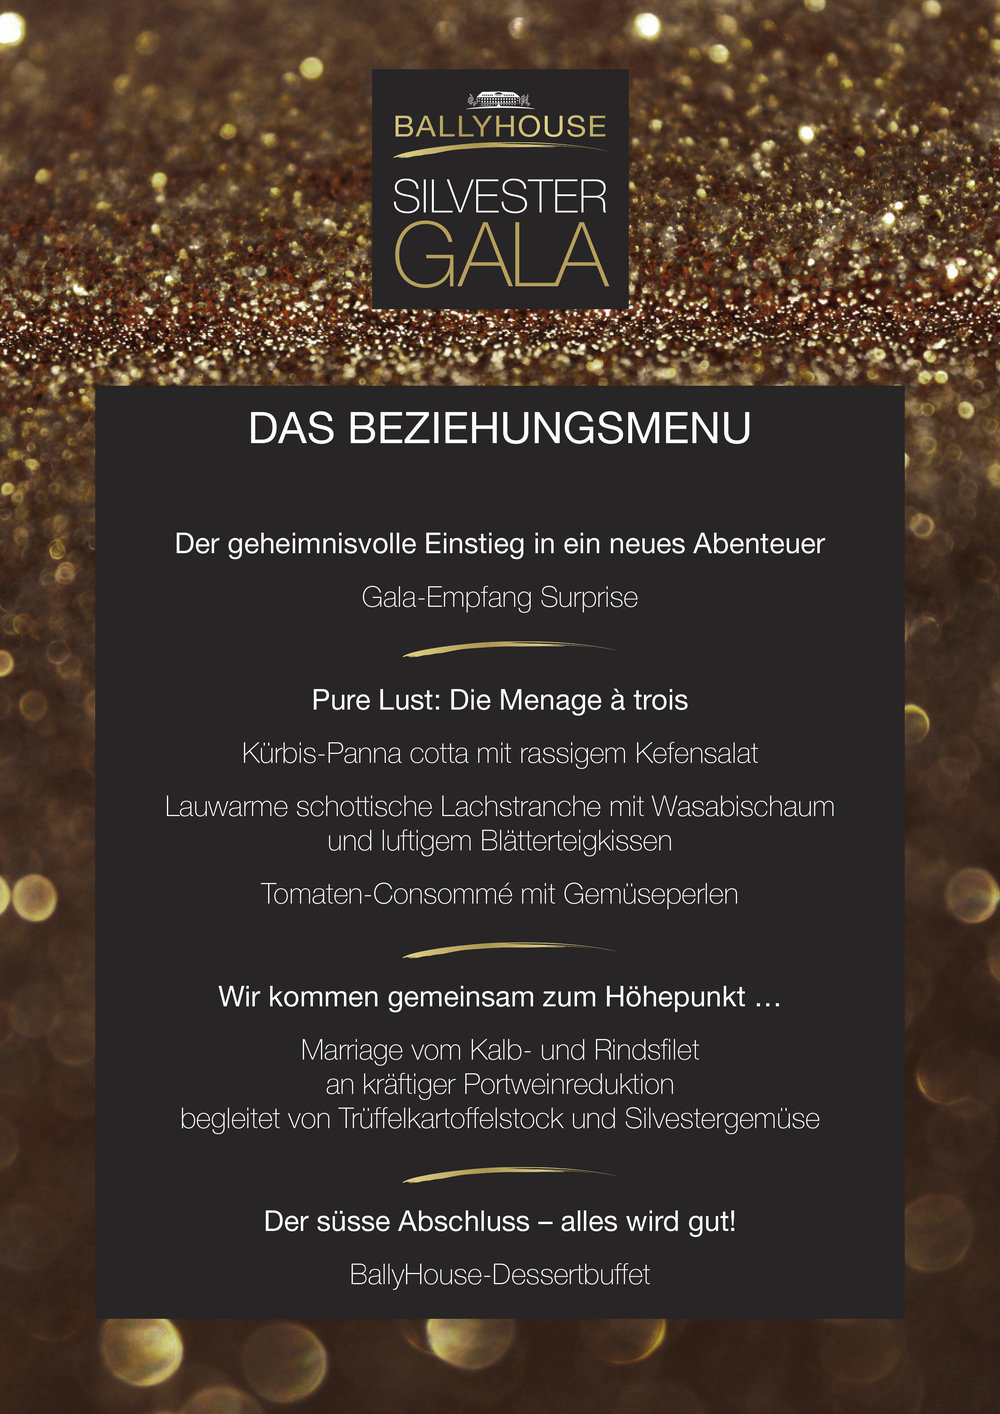 Menu Silvester Gala BallyHouse